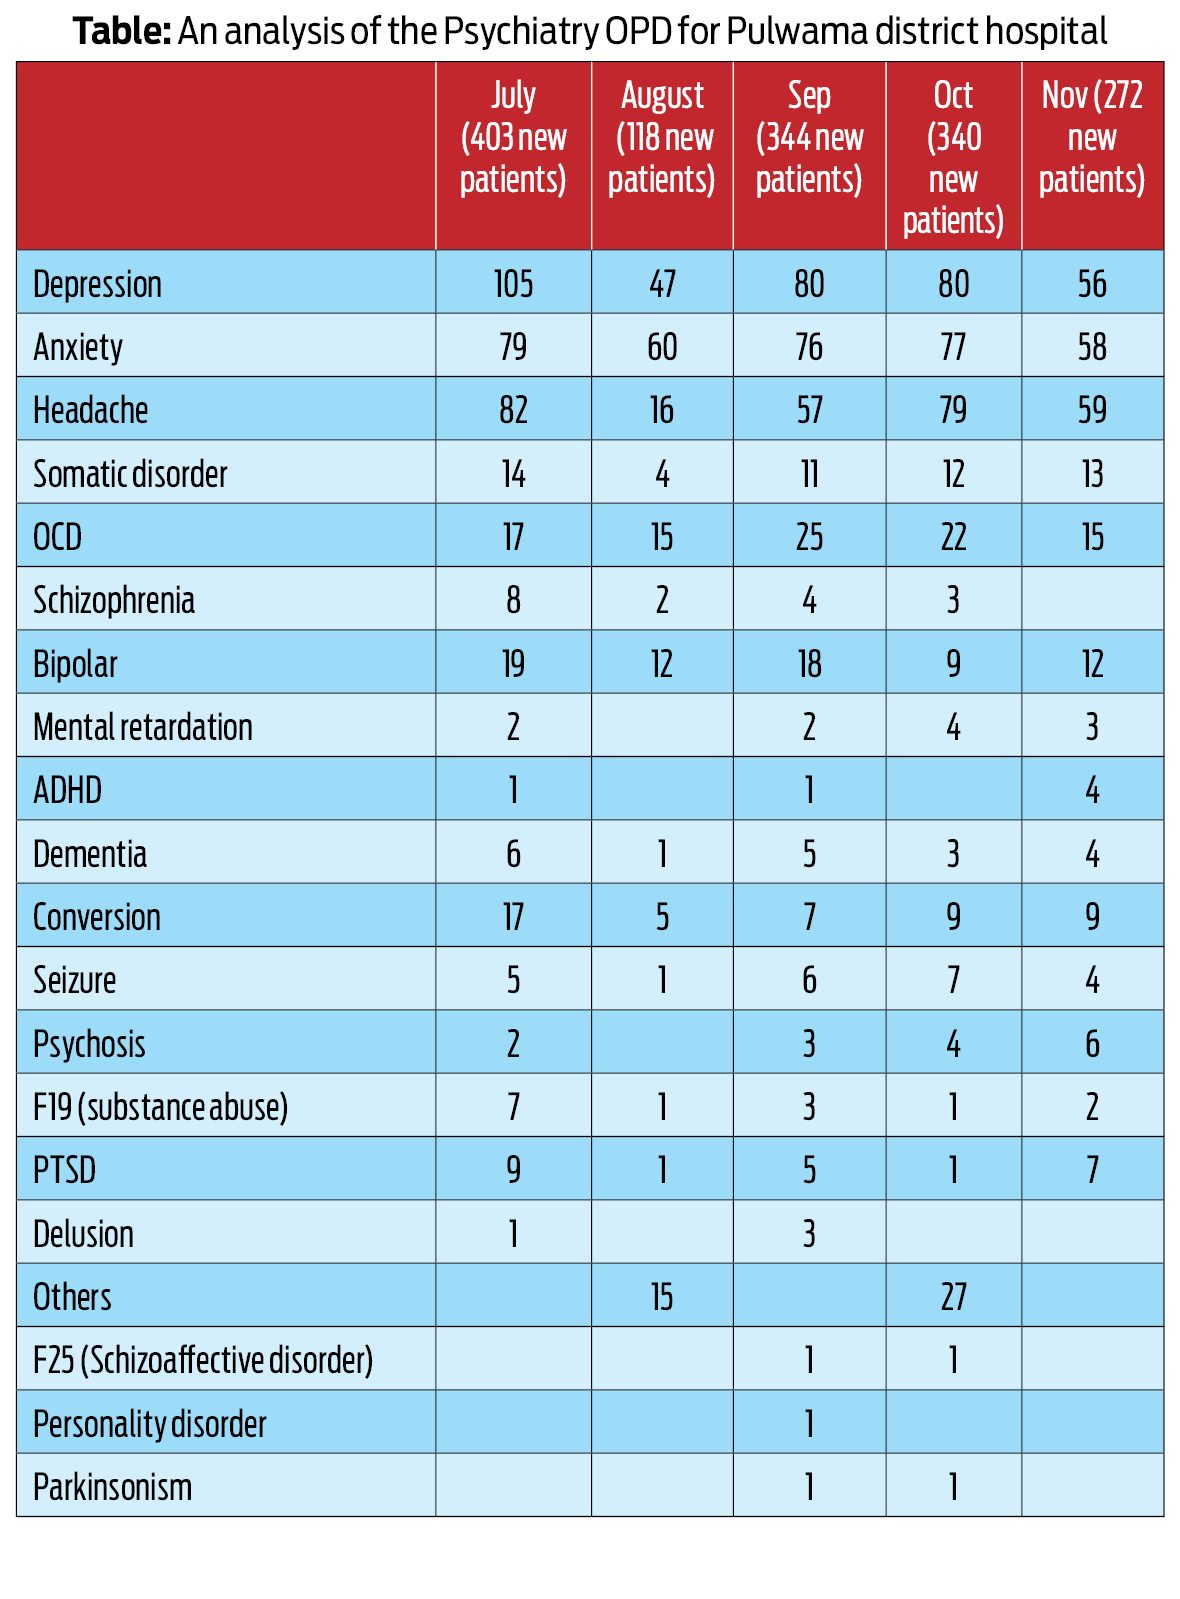 Table: An analysis of the Psychiatry OPD for Pulwama district hospital